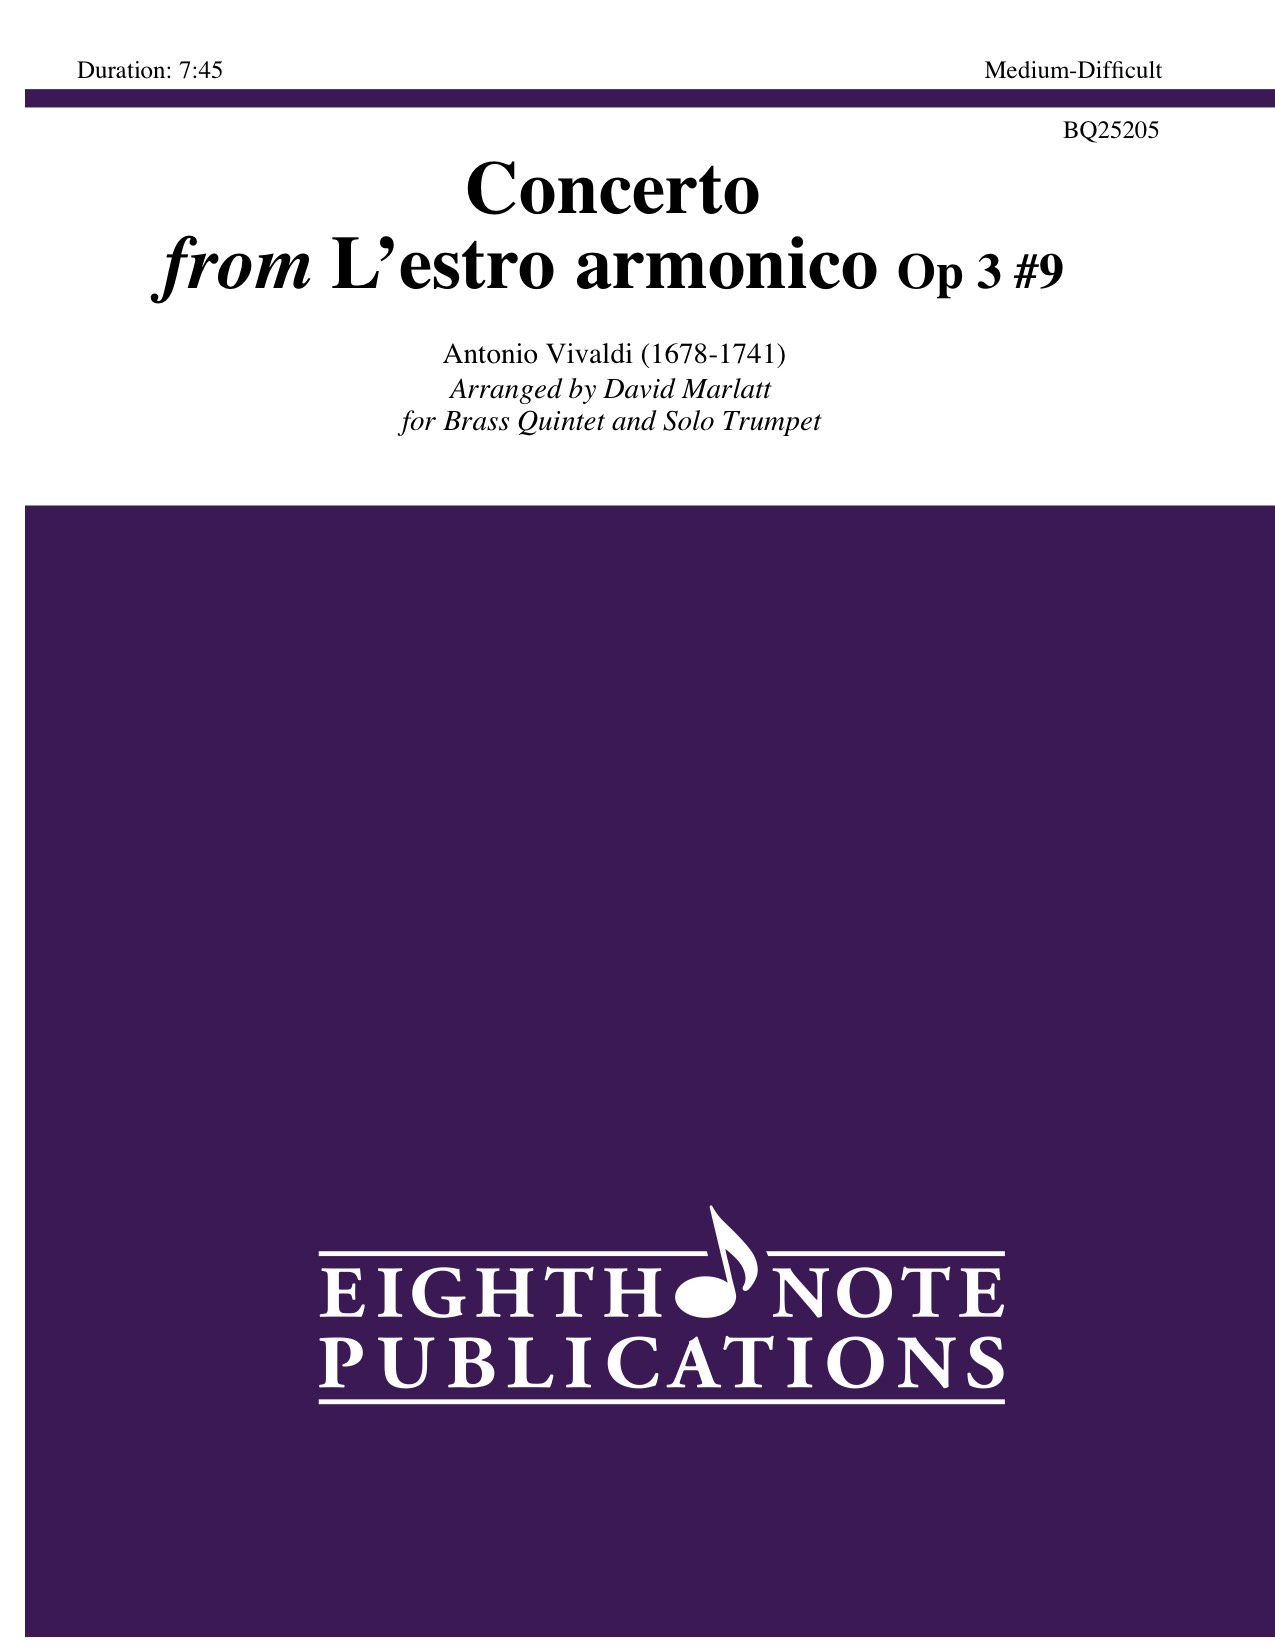 Concerto from Lestro armonico Op 3 #9  (Bb version) -